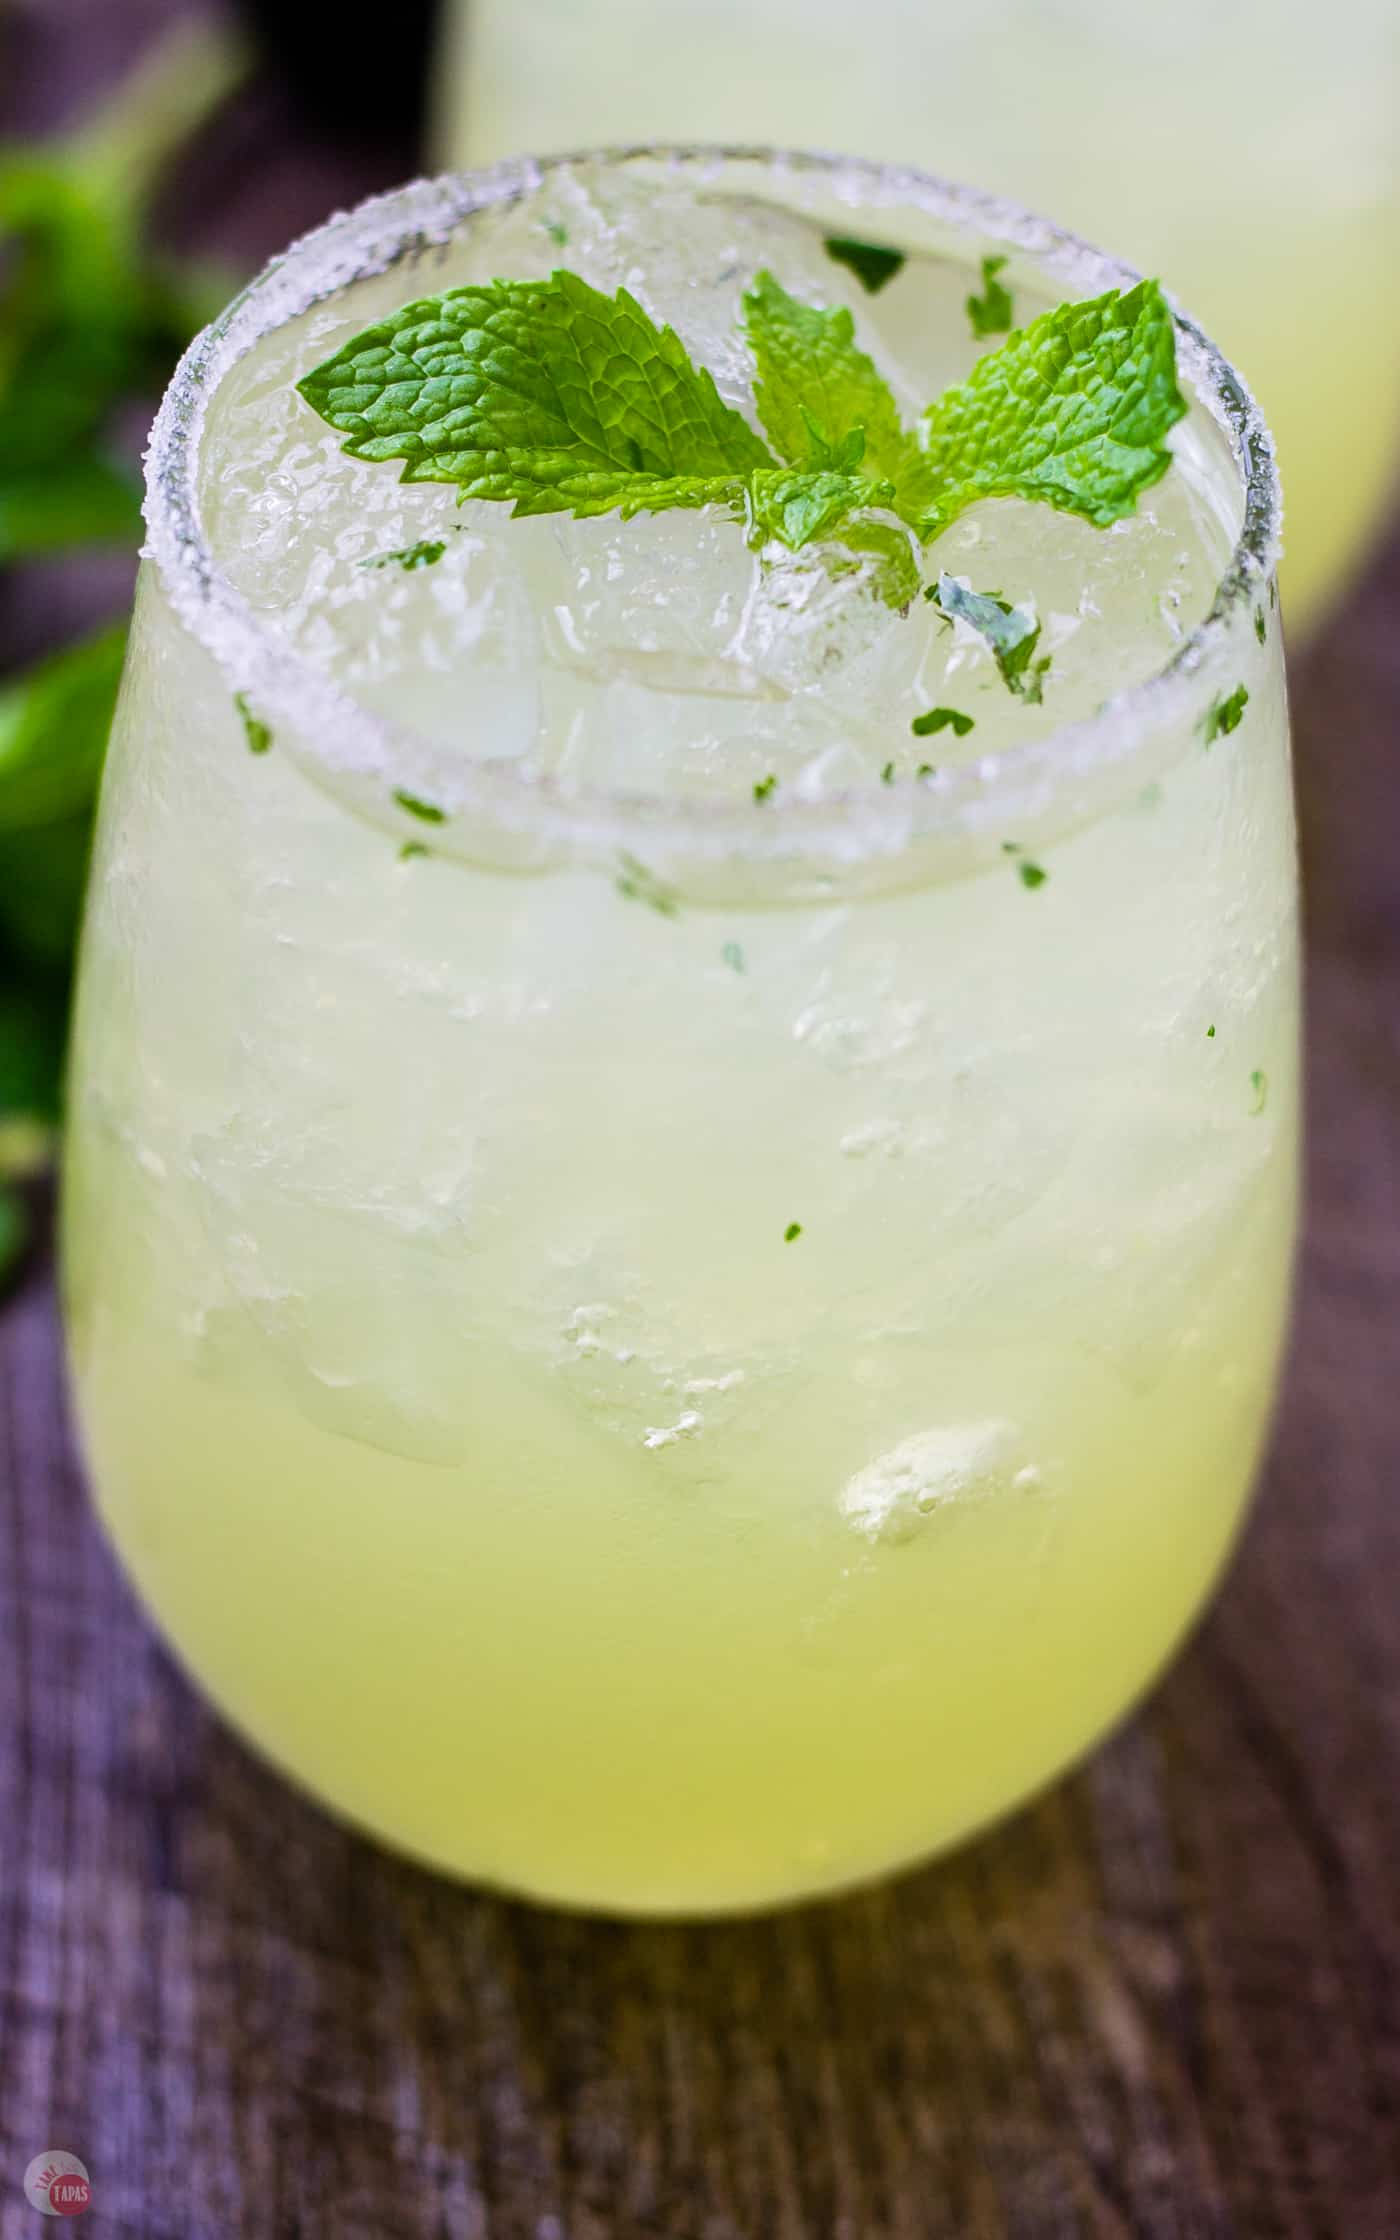 Check out the flecks of mint floating in the Mariachi Mash | Take Two Tapas | #Limoncello #Lime #Tequila #Cocktails #SummerEntertaining #EasyCocktails